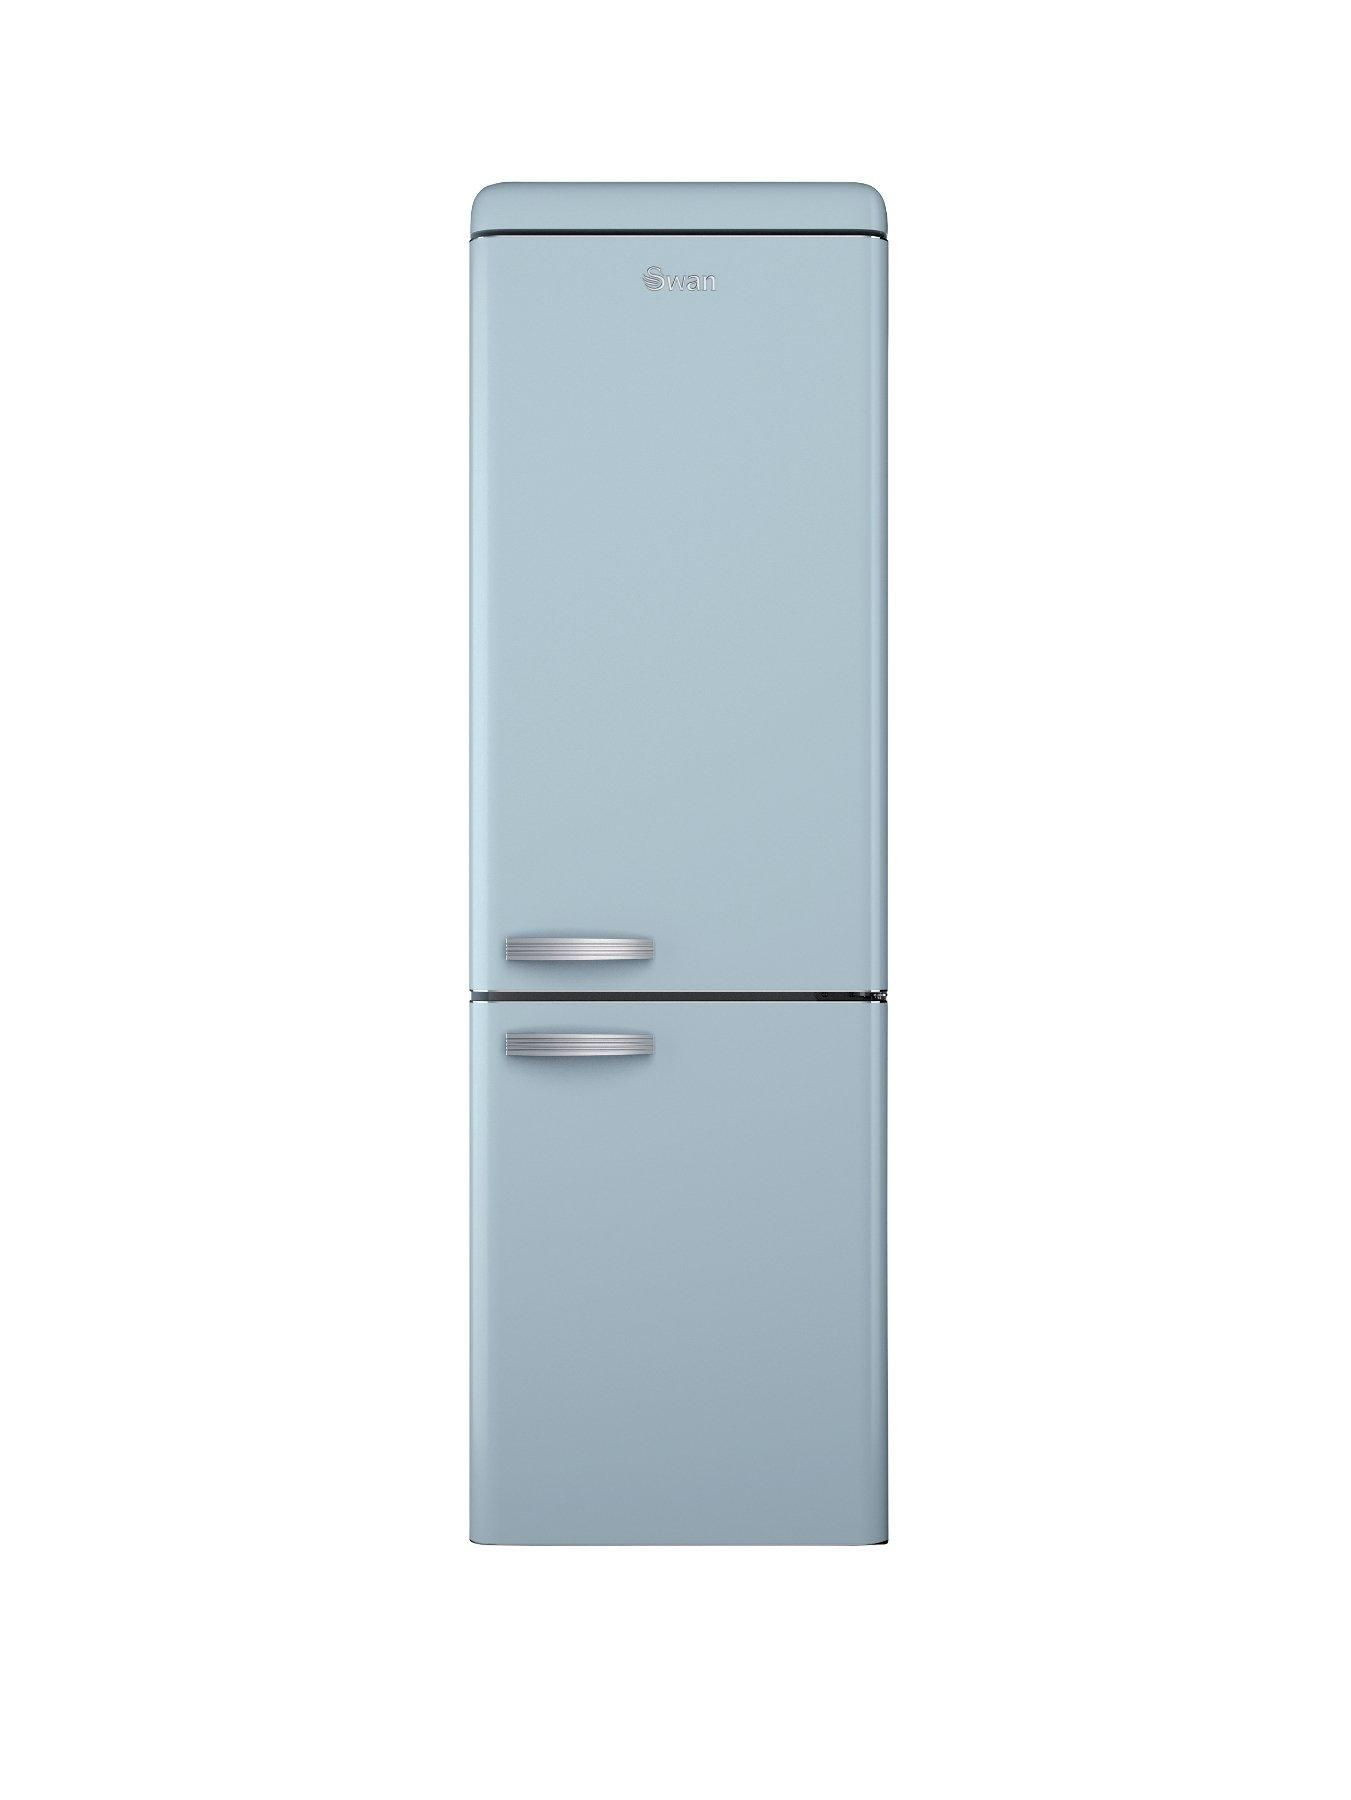 SR11020BLN 60cm Retro Fridge Freezer - Blue | Retro fridge, Retro ...